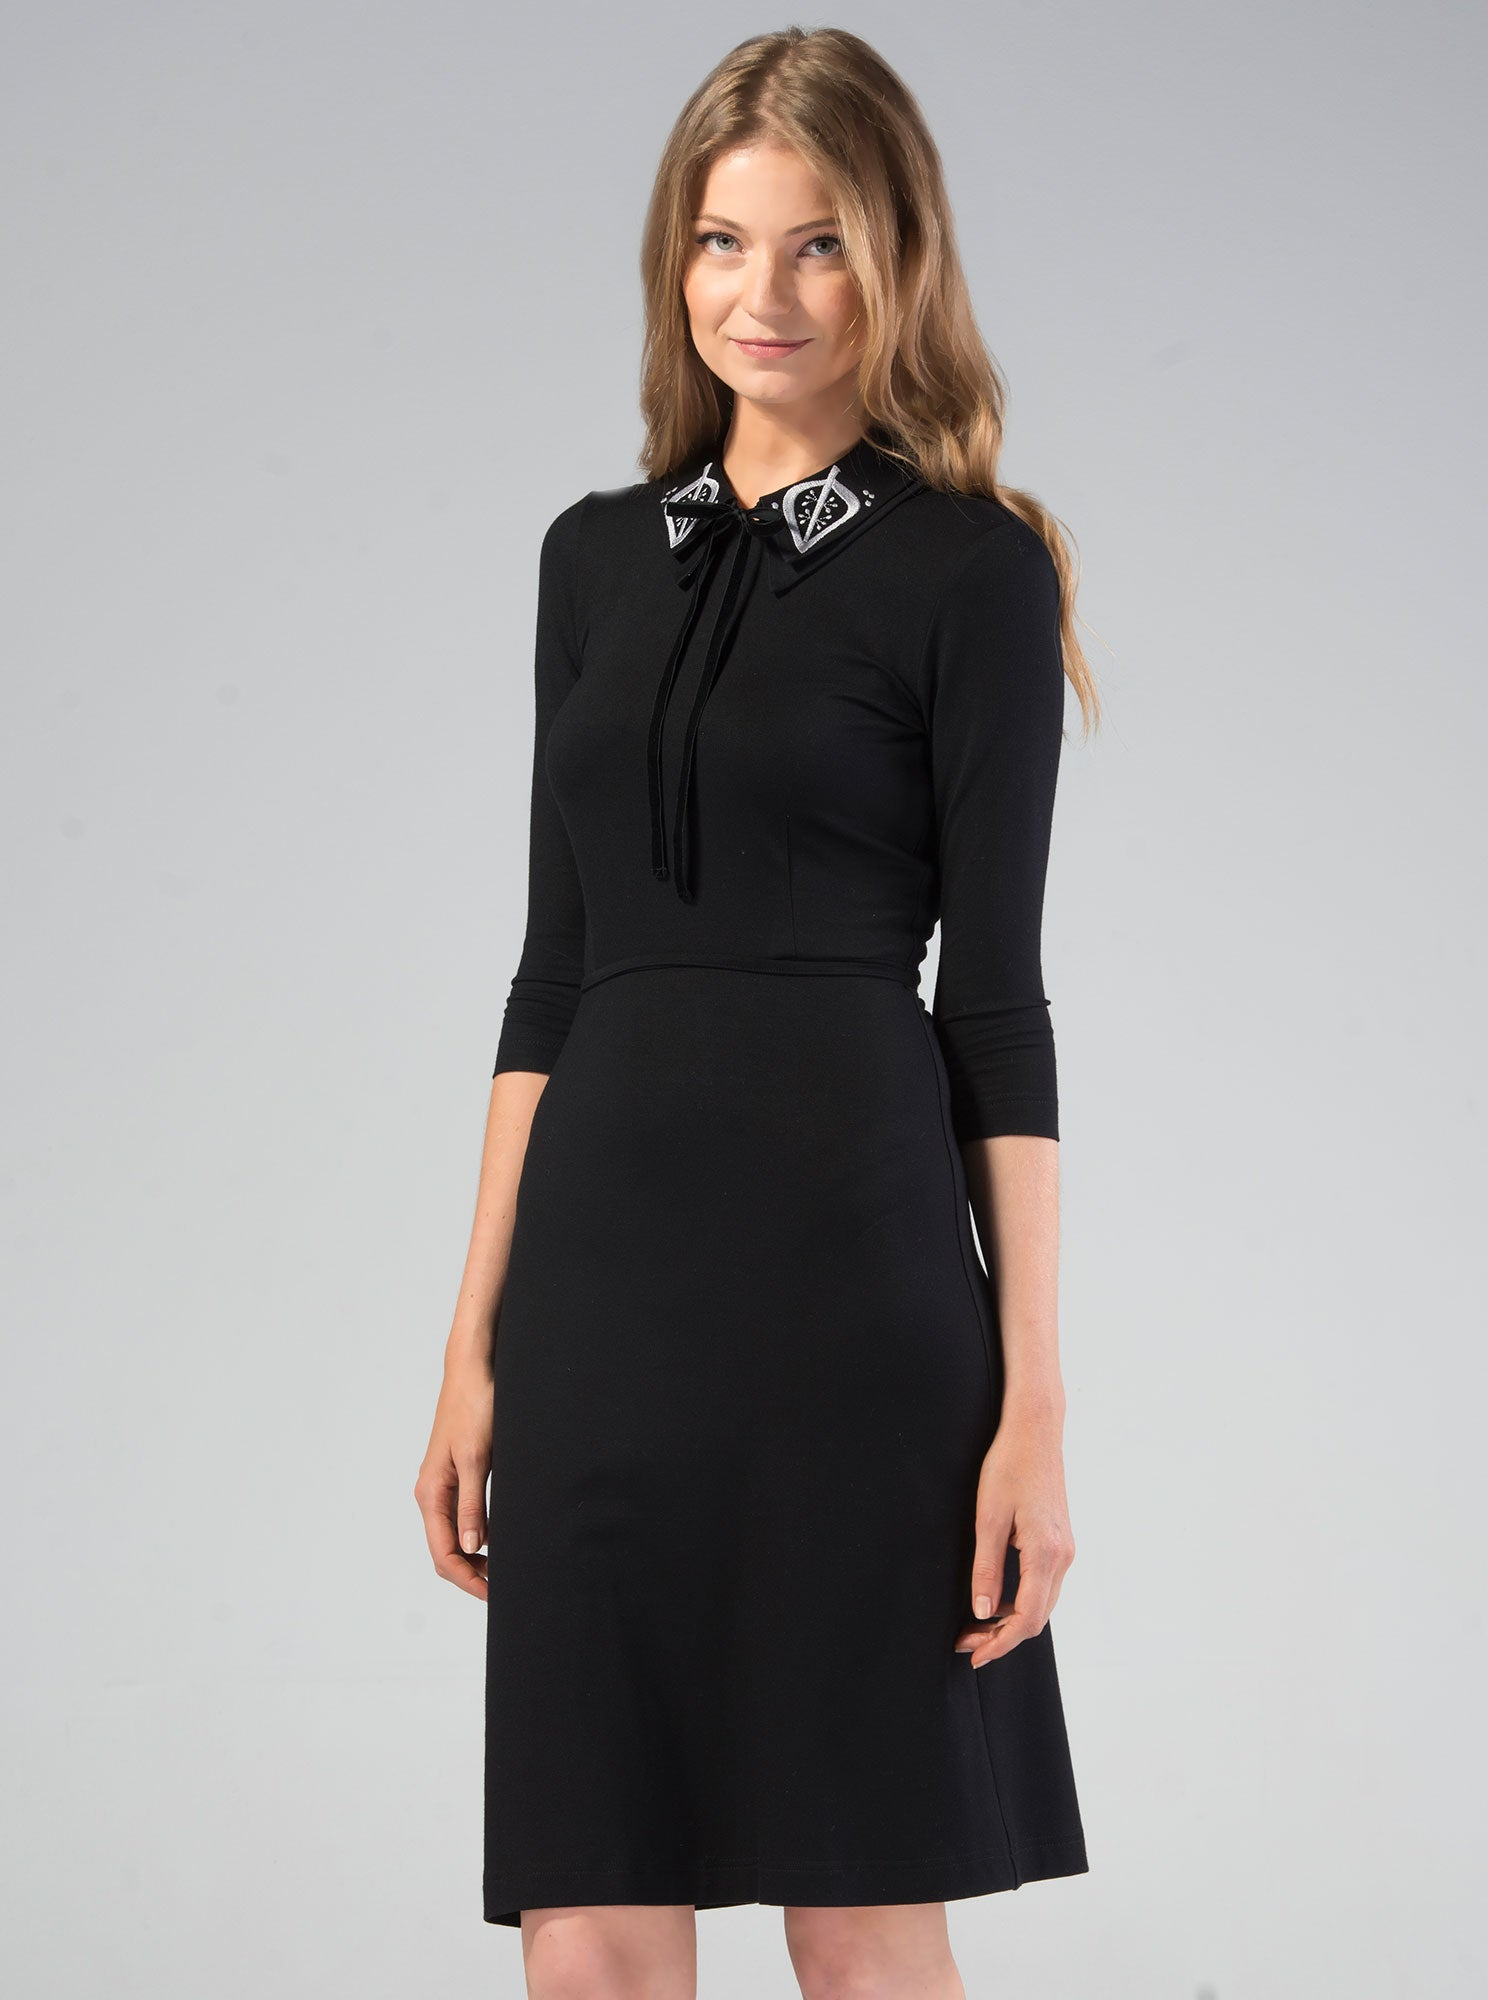 TUULE Black Bamboo Embroidered Dress